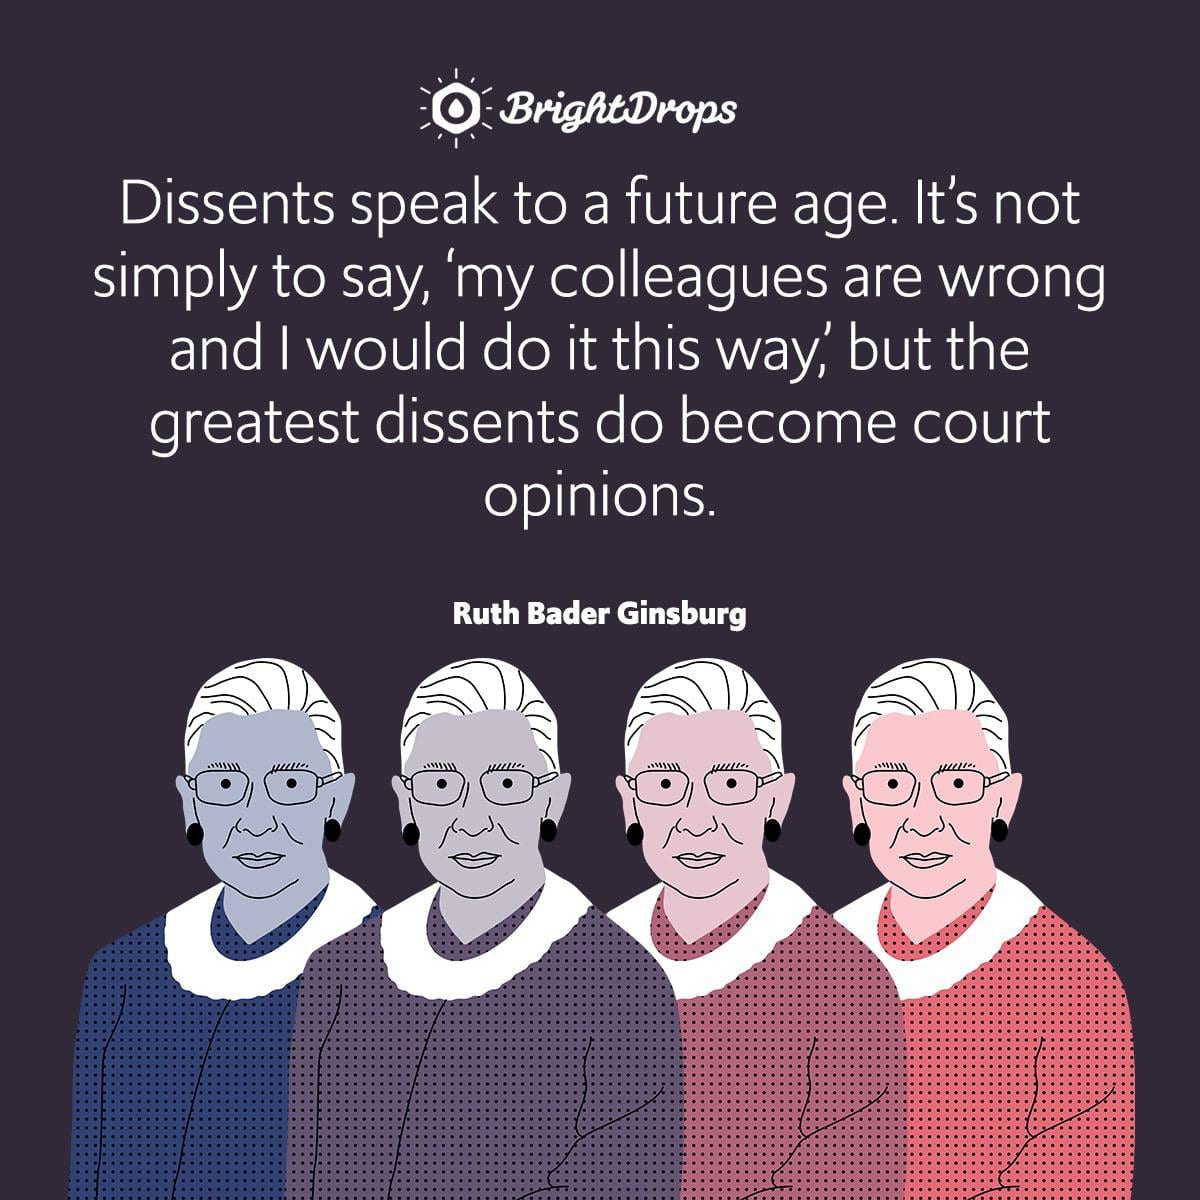 Dissents speak to a future age. It's not simply to say, 'my colleagues are wrong and I would do it this way,' but the greatest dissents do become court opinions.